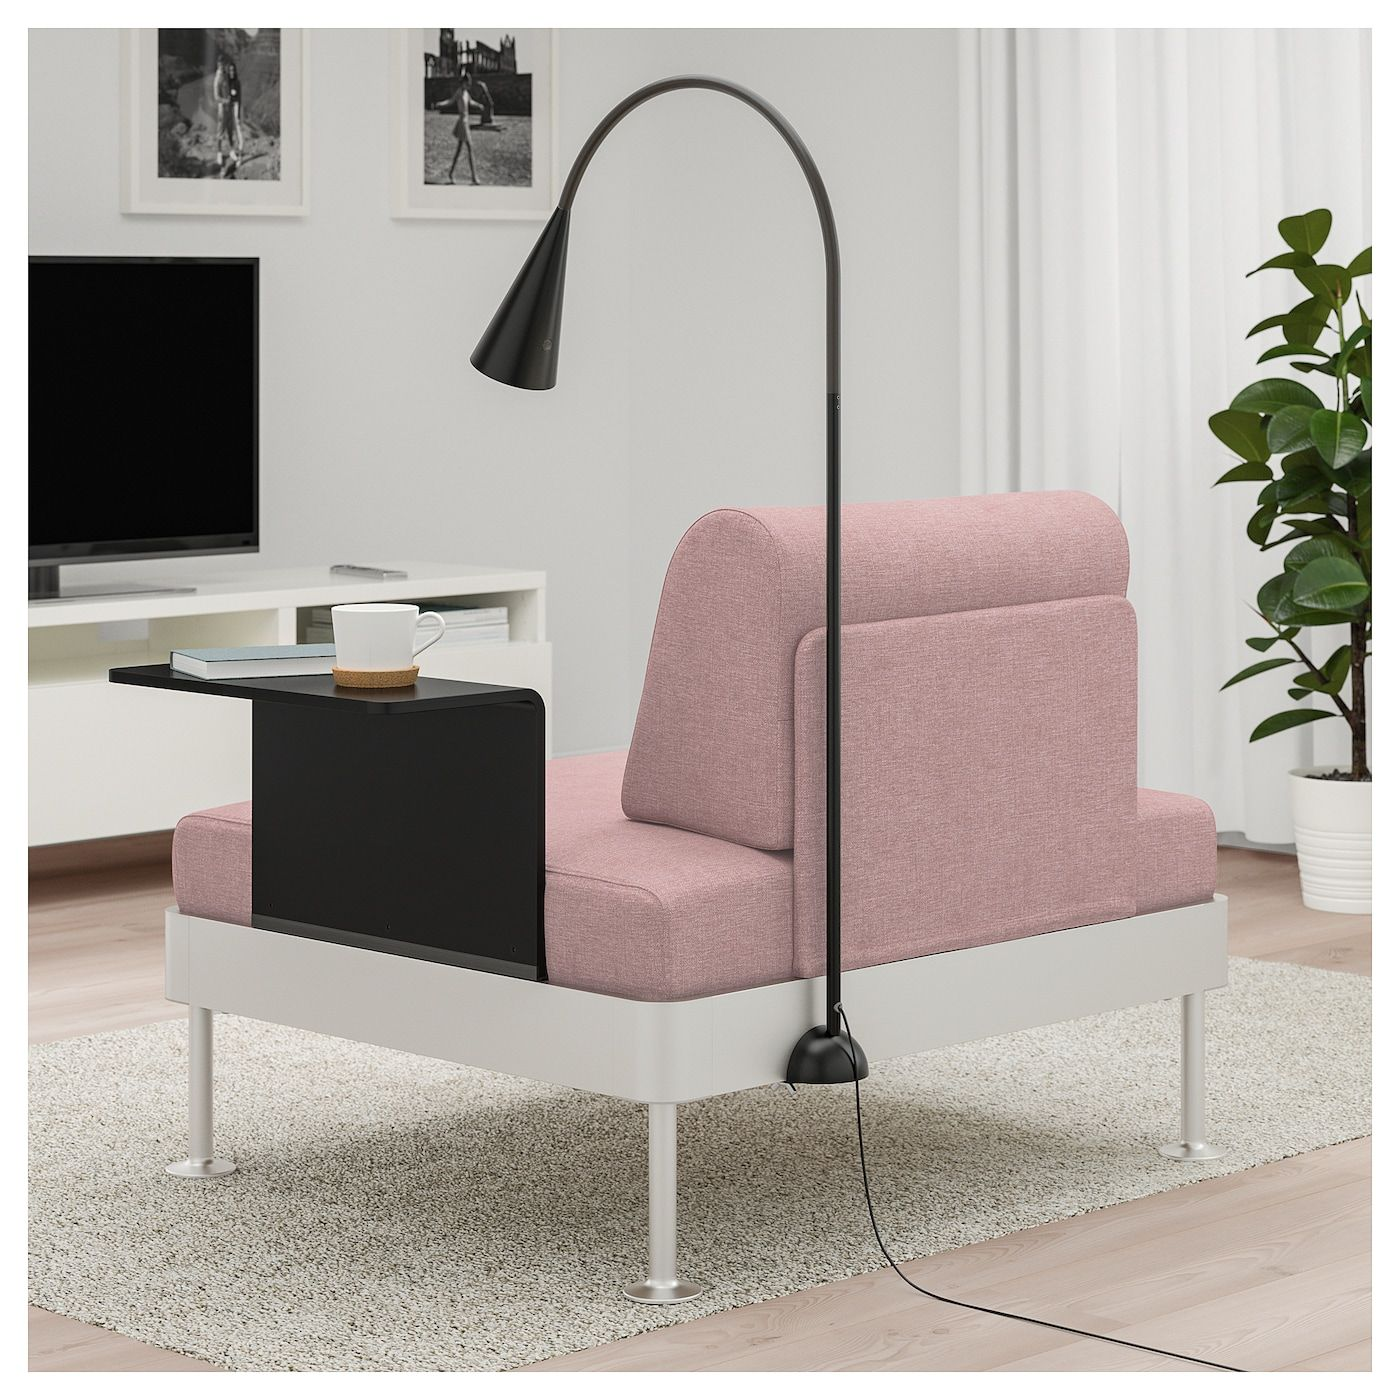 Delaktig Armchair With Side Table And Lamp Gunnared Light Brown Pink Ikea Ikea Armchair Painted Side Tables